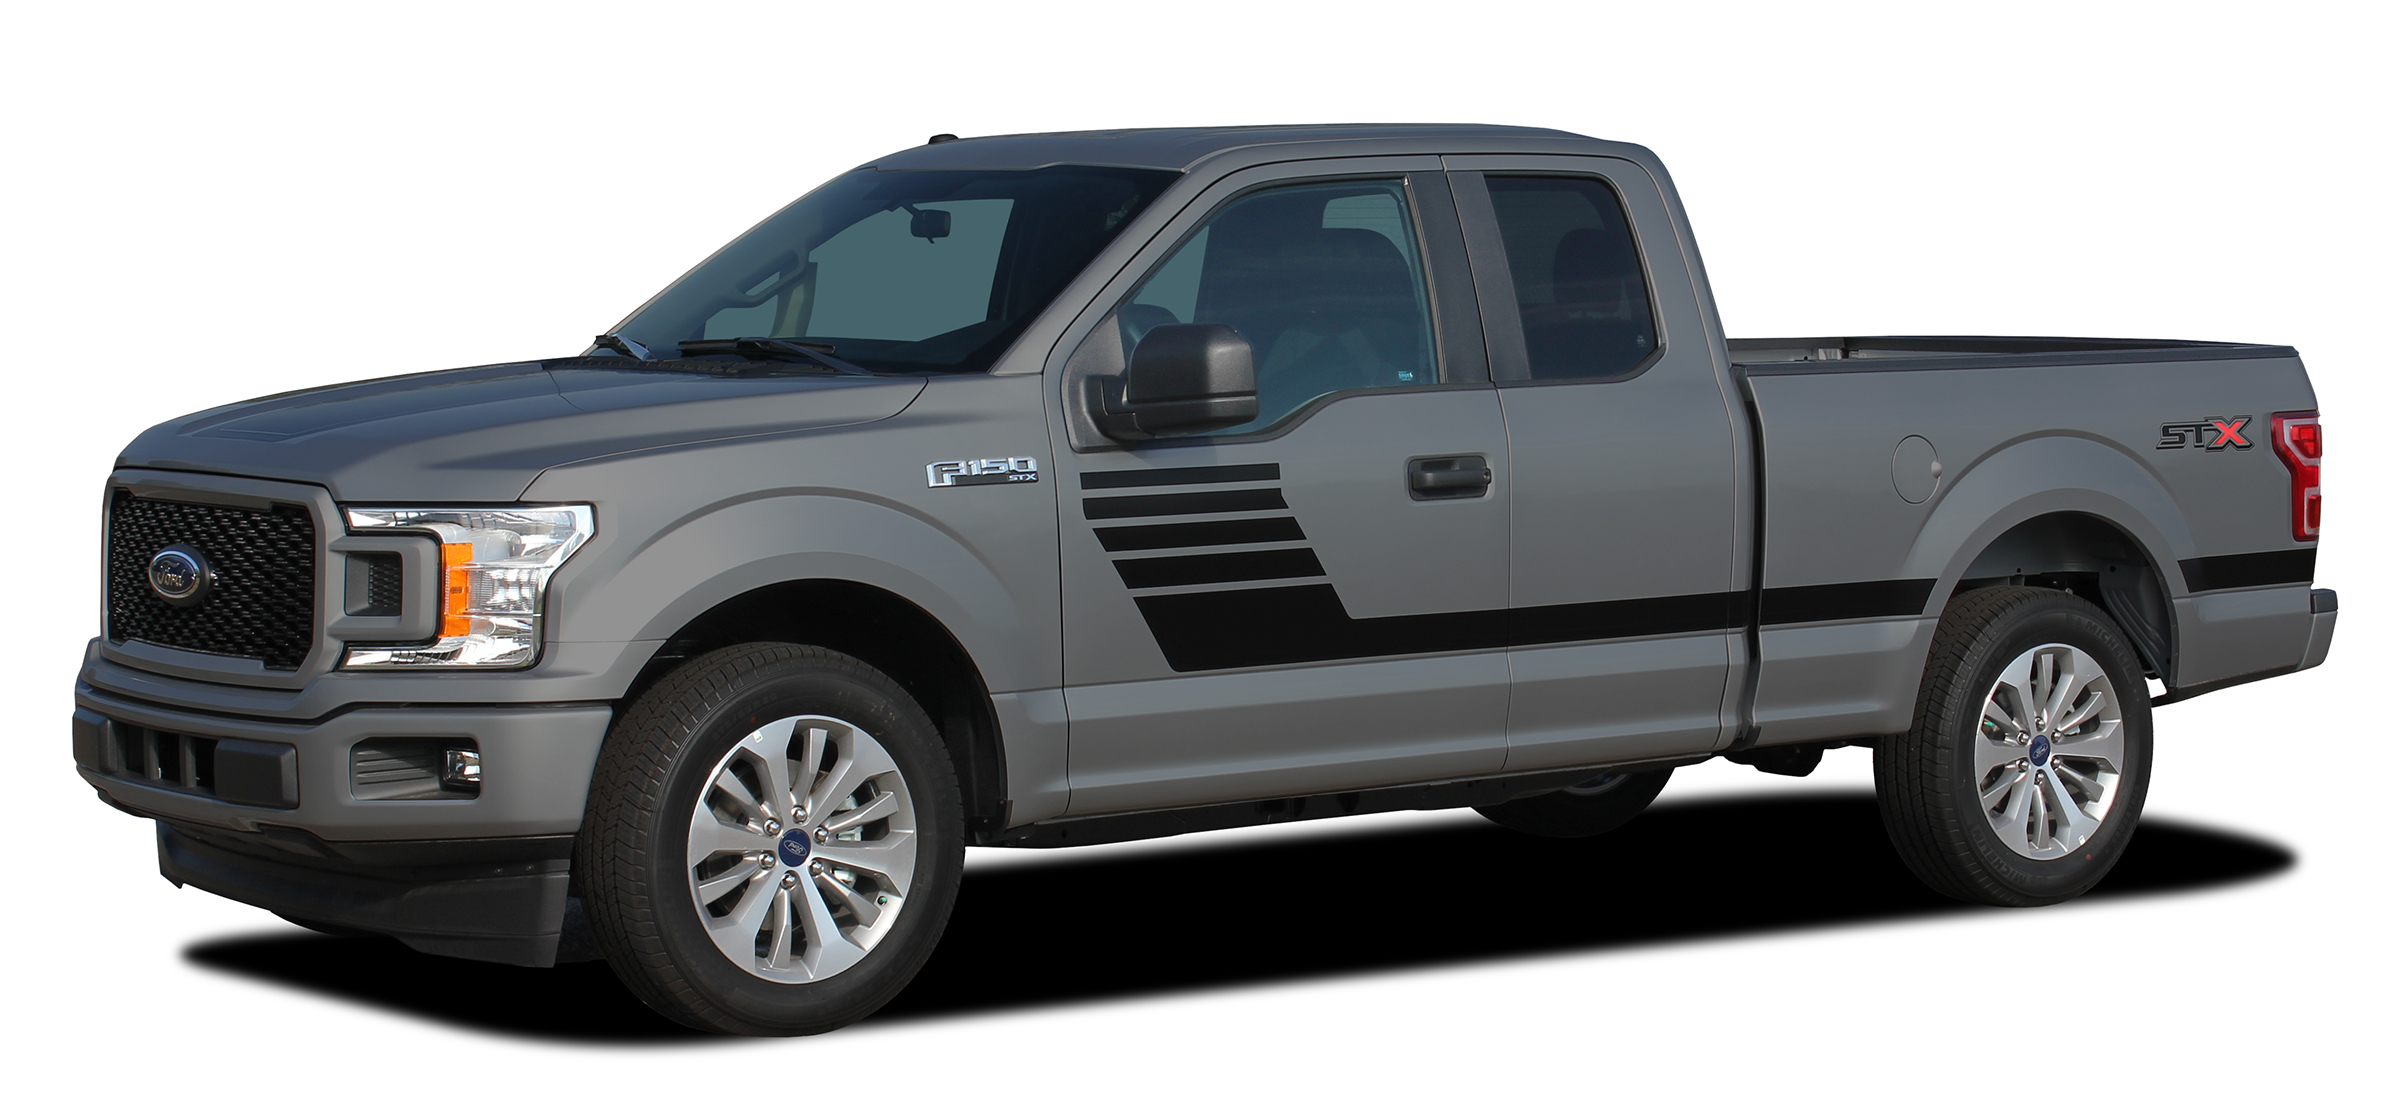 LEADFOOT Side Vinyl Graphics 2015-2018 Ford F-150